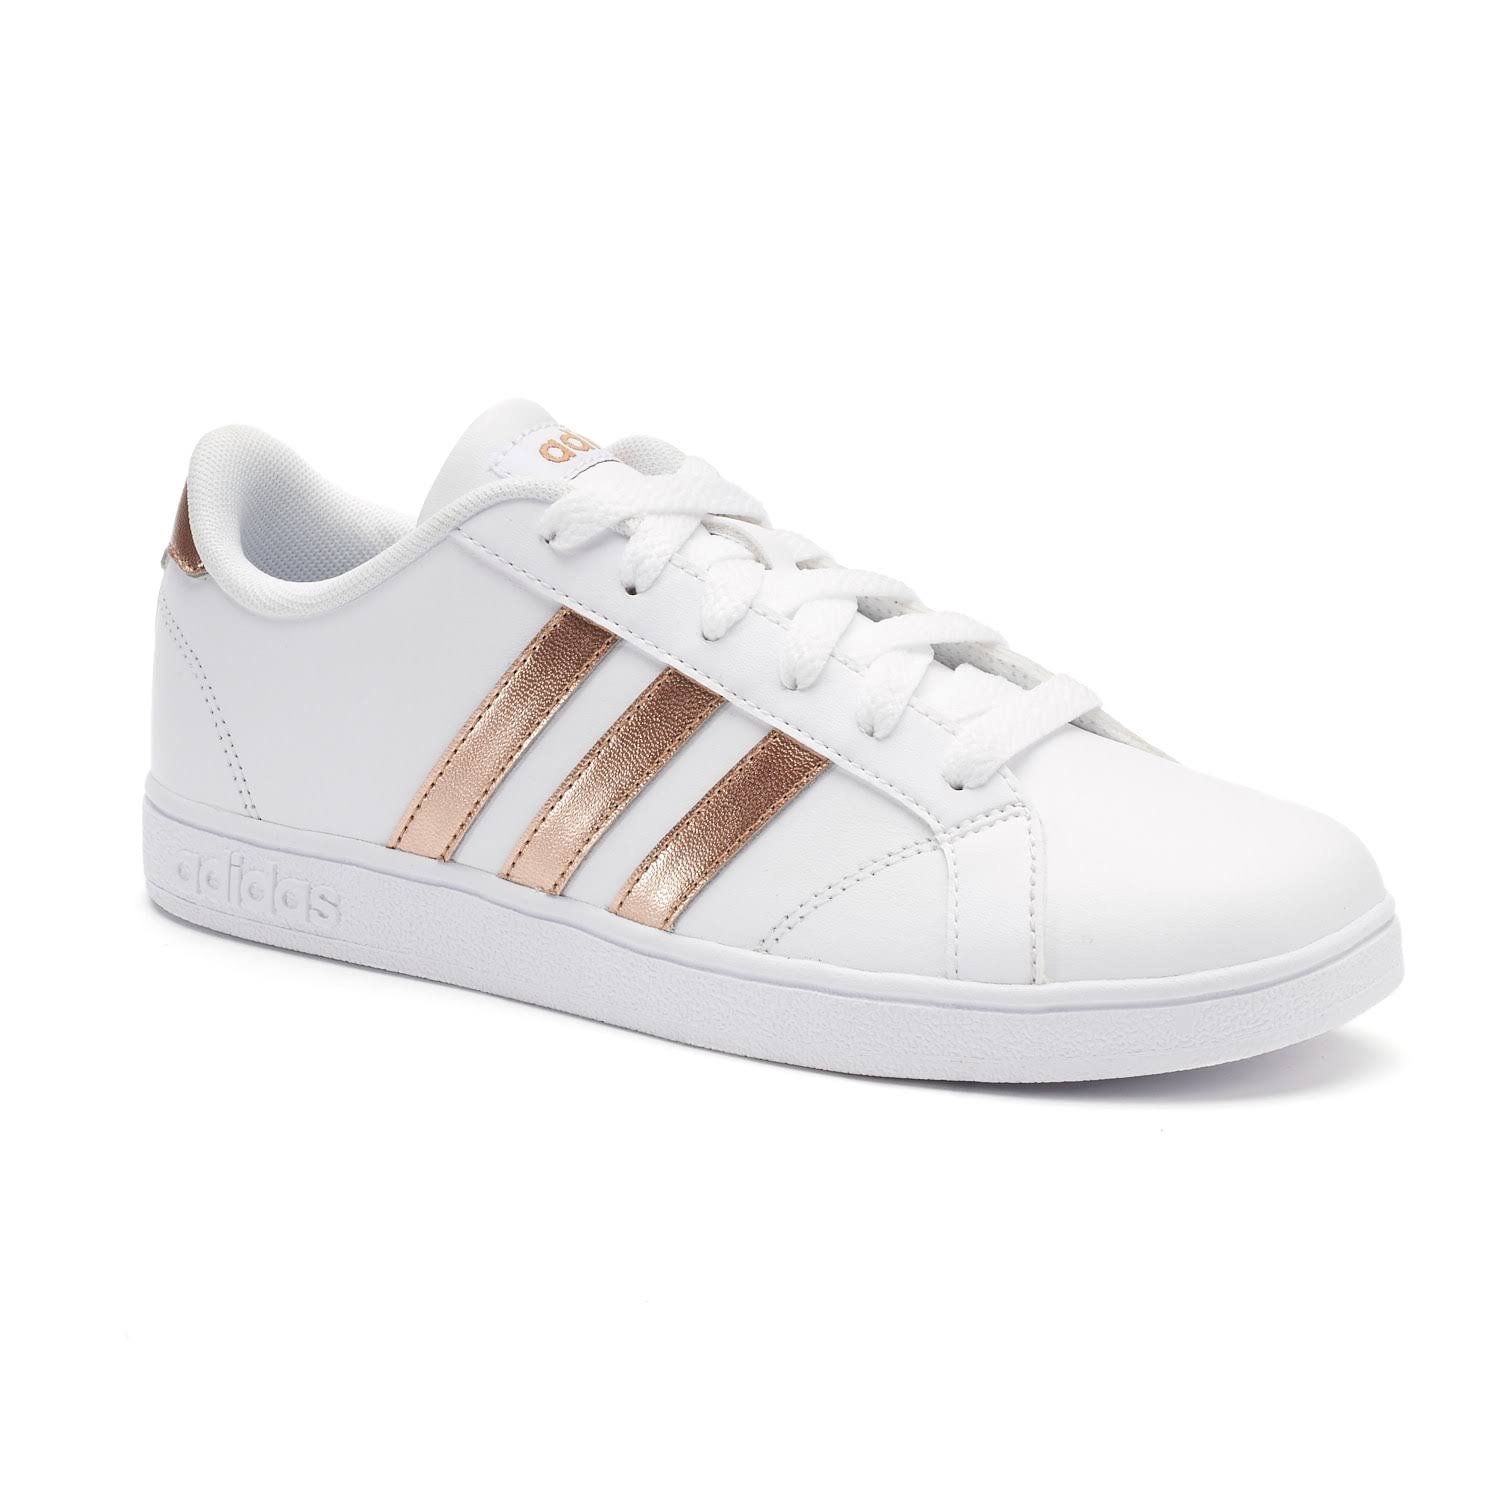 Adidas Youth K Sneaker White Medium Girls 4 Baseline rwrqSC